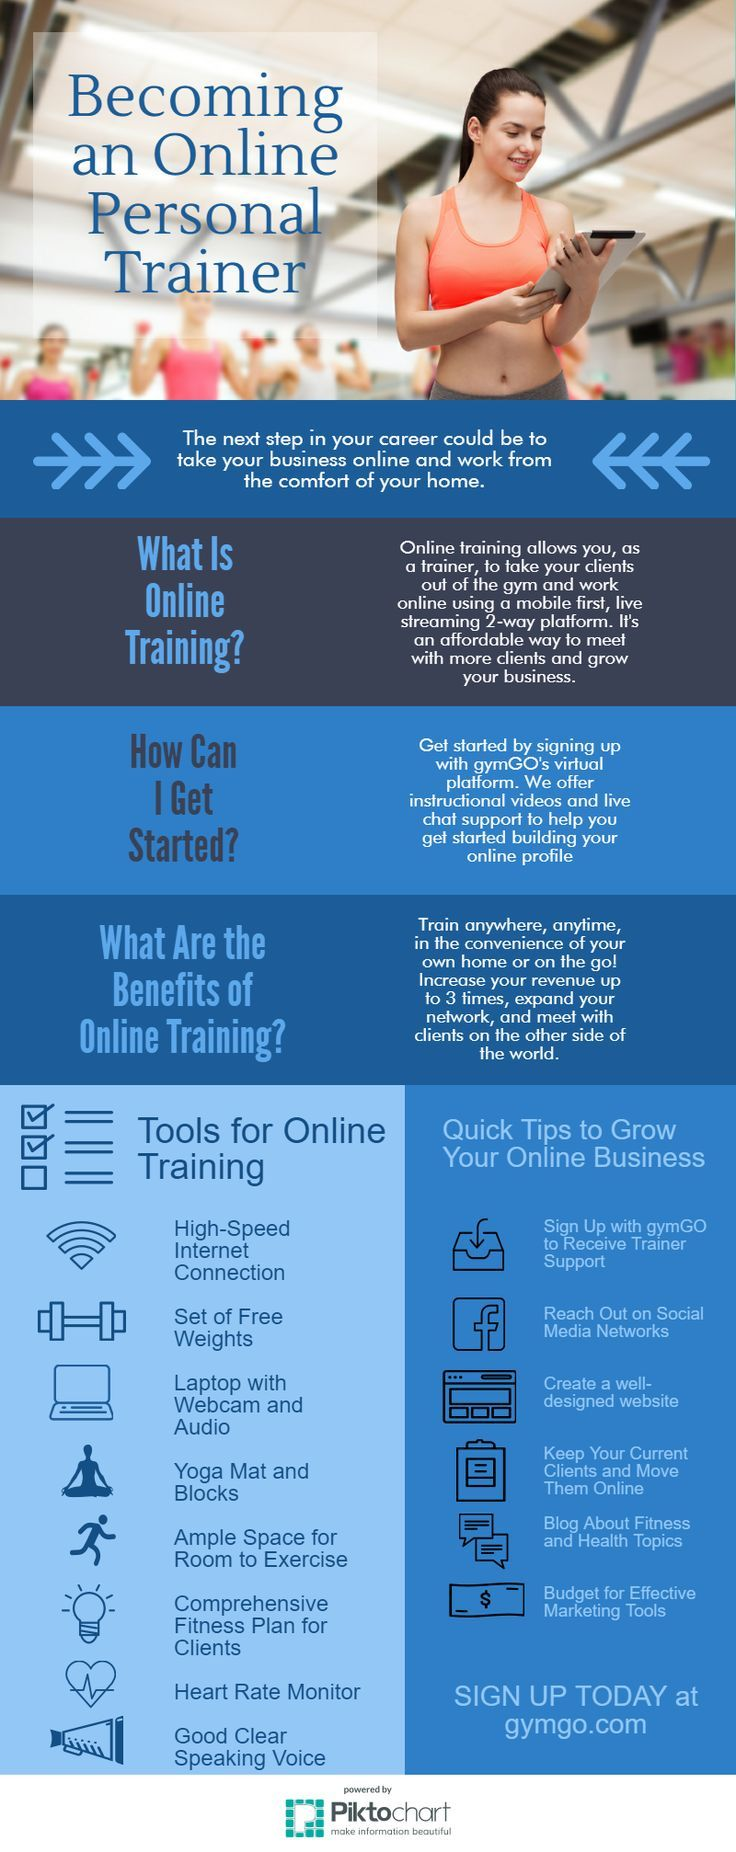 Become An Online Personal Trainer And Learn What Tools You Need To